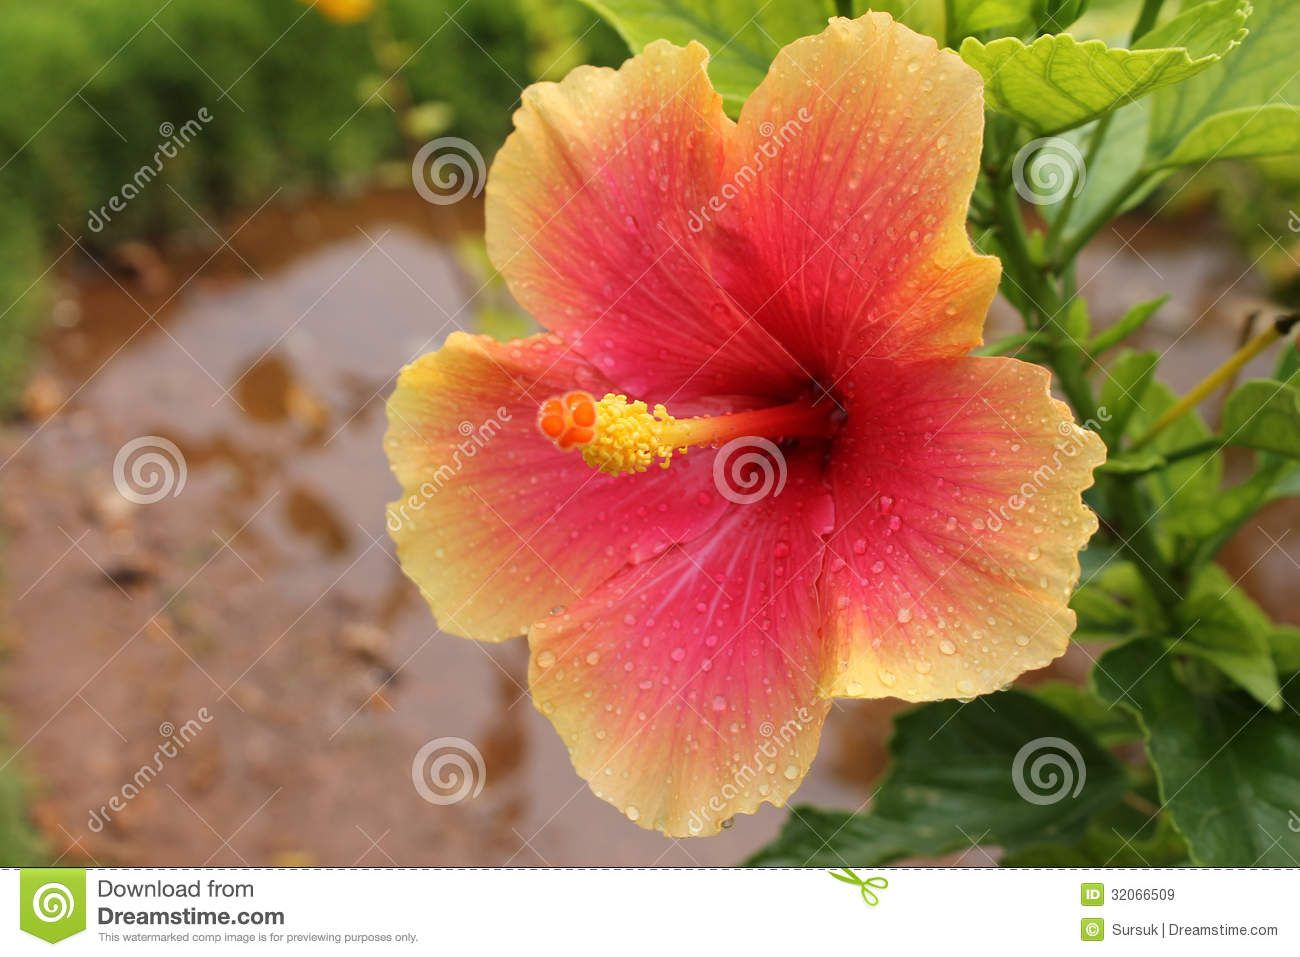 Selective Focus Photography Of Red Hibiscus Flower Photo Free Plant Image On Unsplash